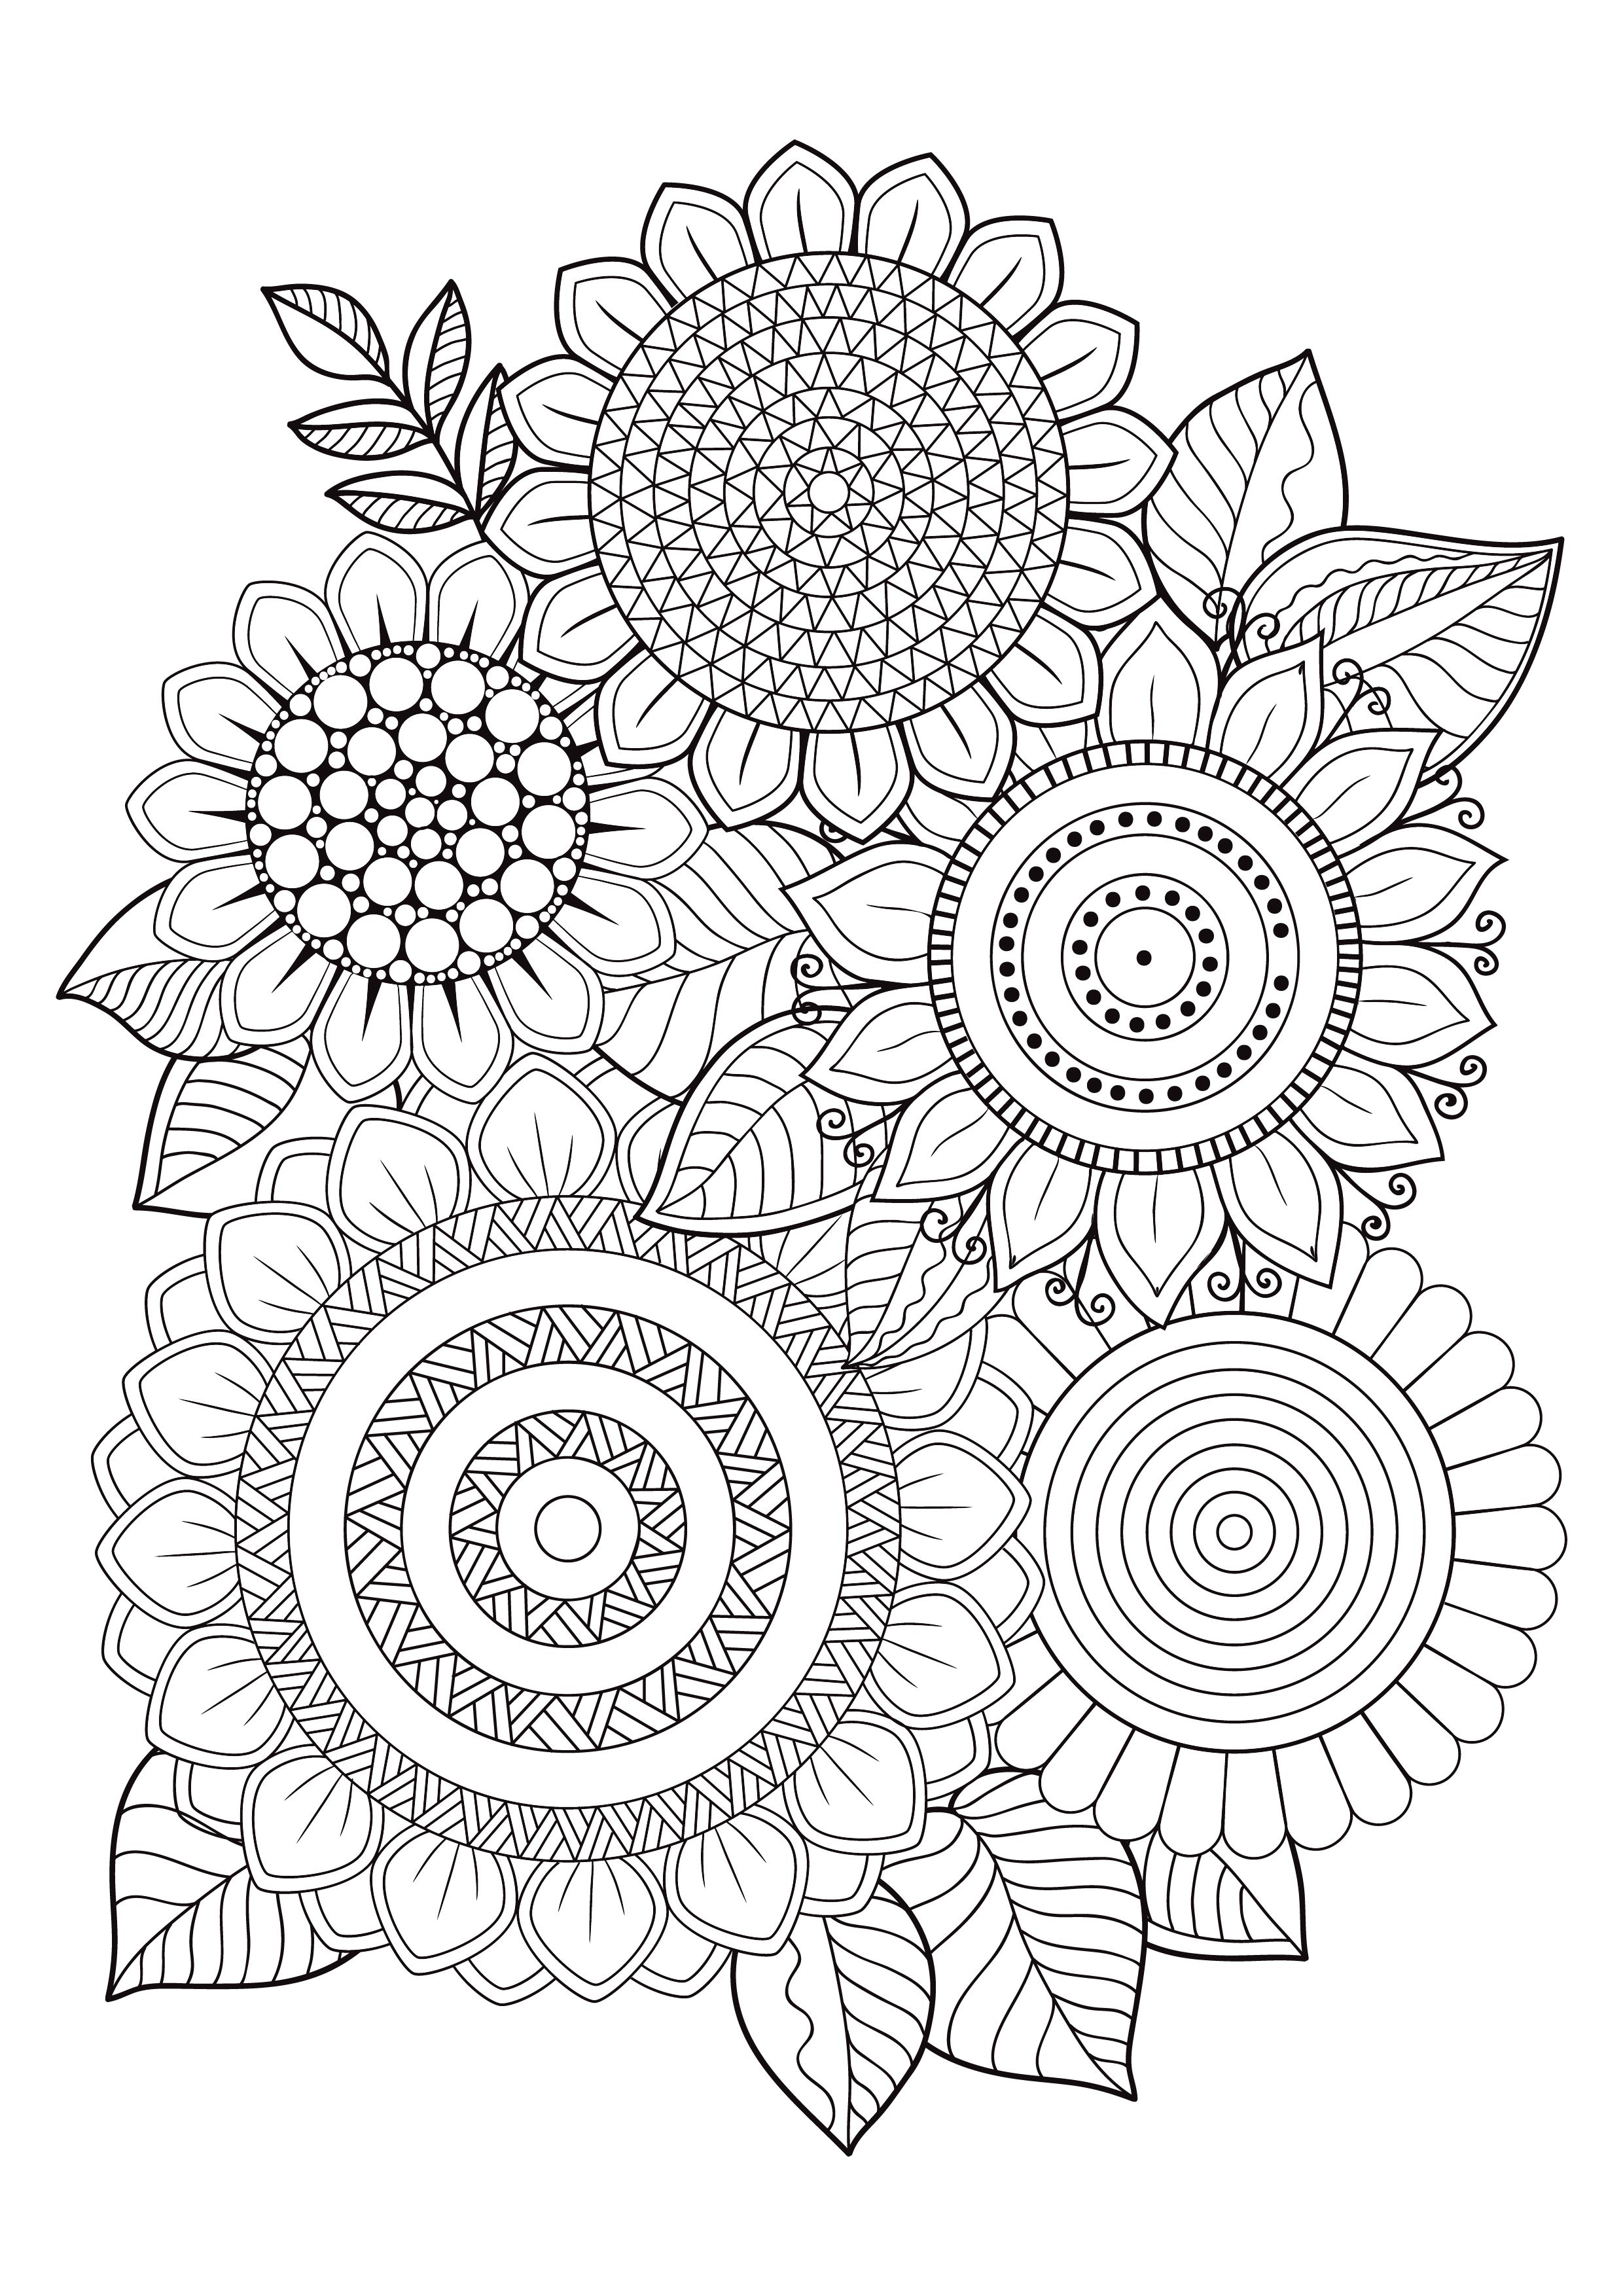 - Mindfulness Coloring Pages - 12 Flowers In 2020 (With Images